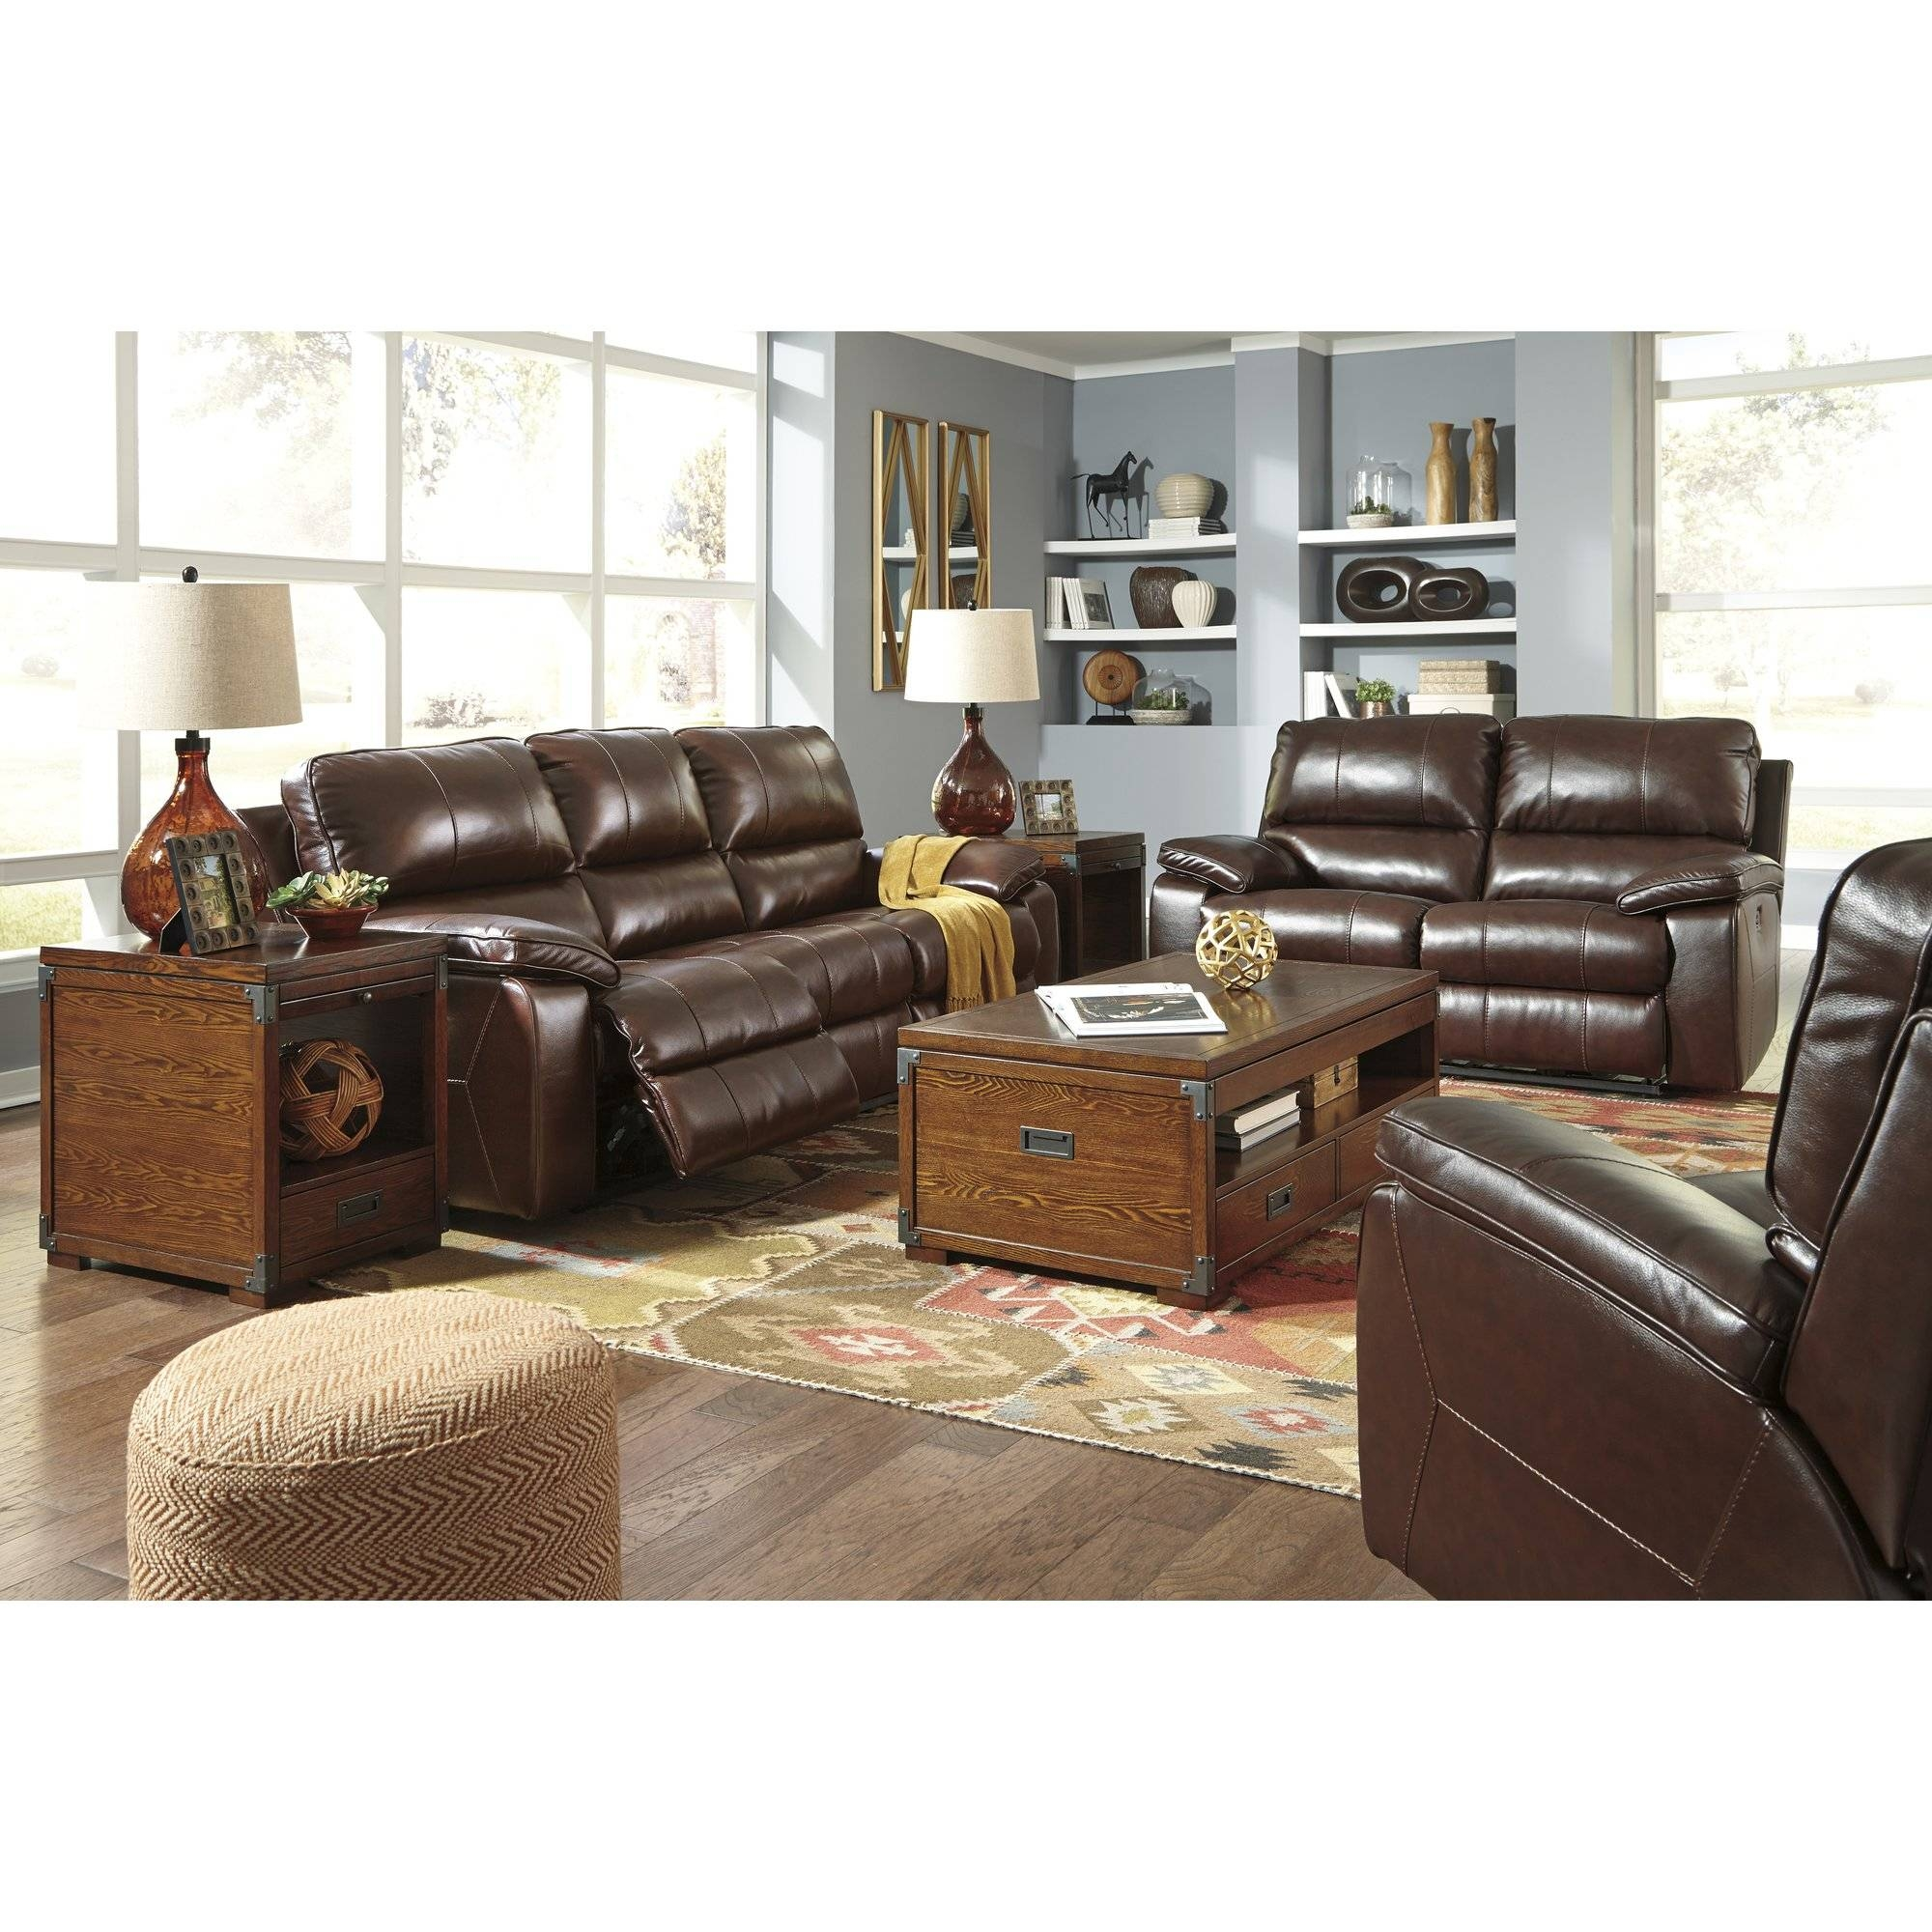 Red Barrel Studio Stratford Reclining Sofa | Wayfair throughout Stratford Sofas (Image 19 of 30)